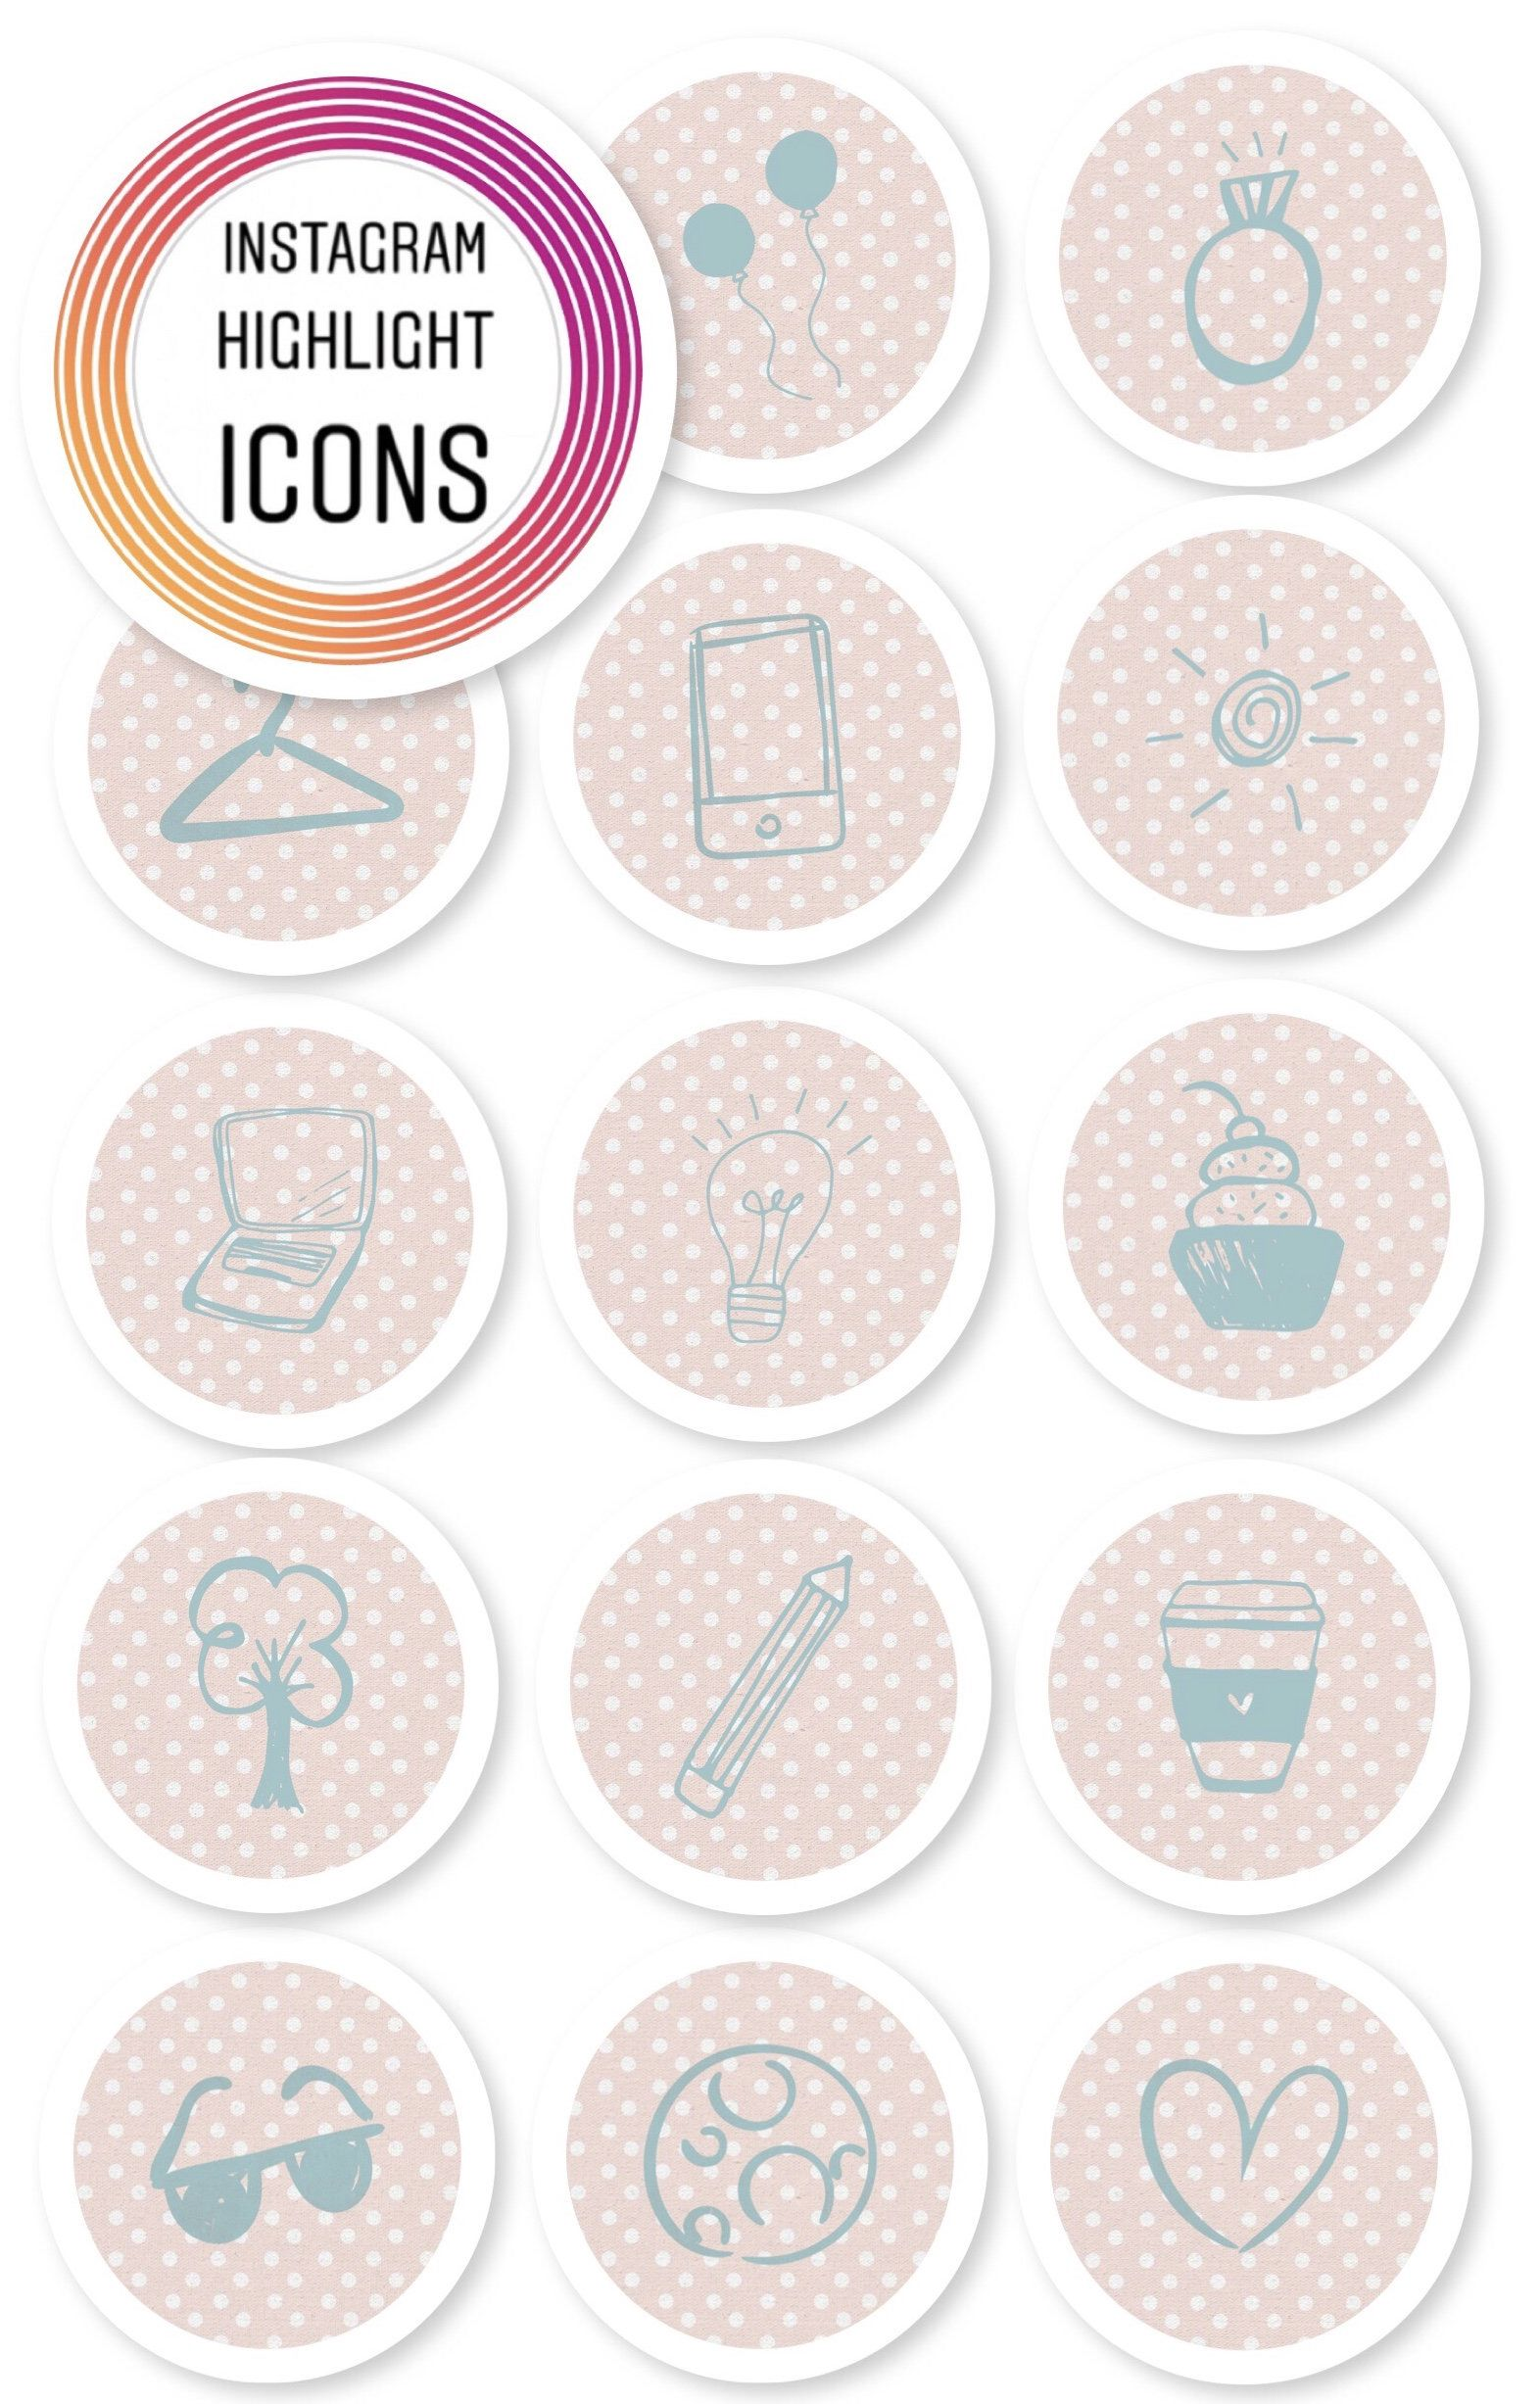 Instagram Highlight Icons Lifestyle set Light Pink